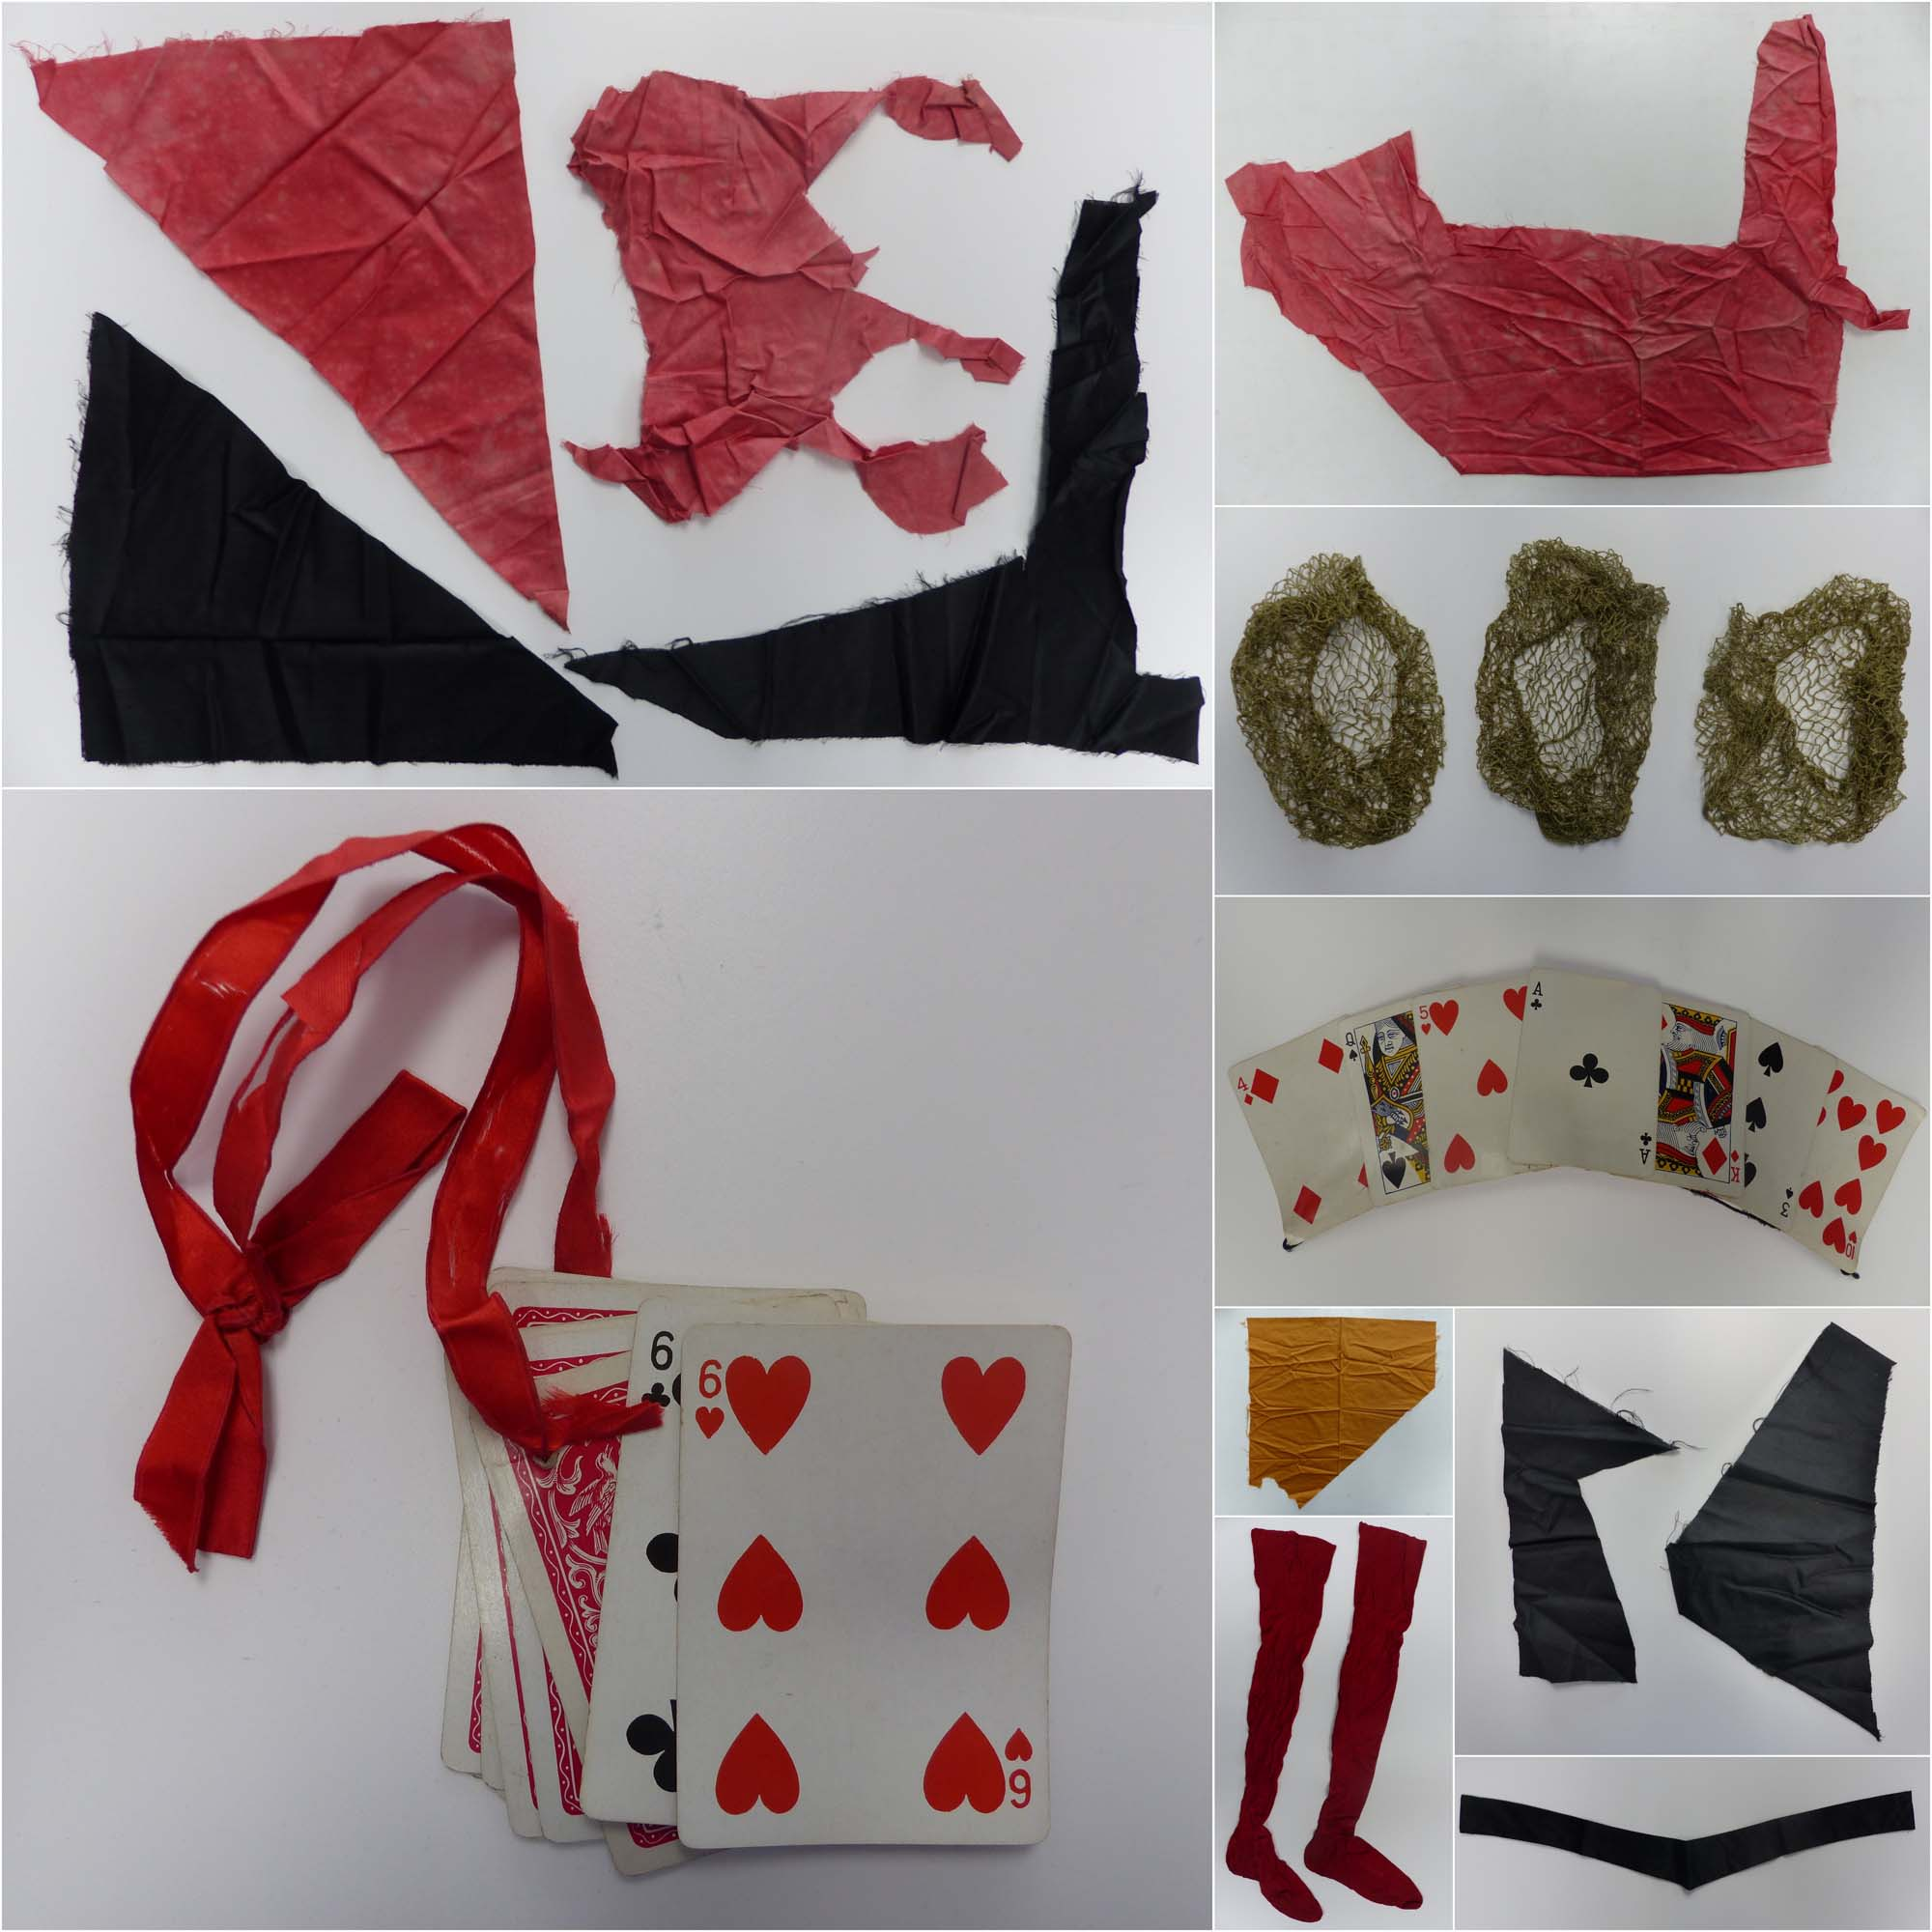 a composite photo showing playing cards, red tights and fragments of fabric